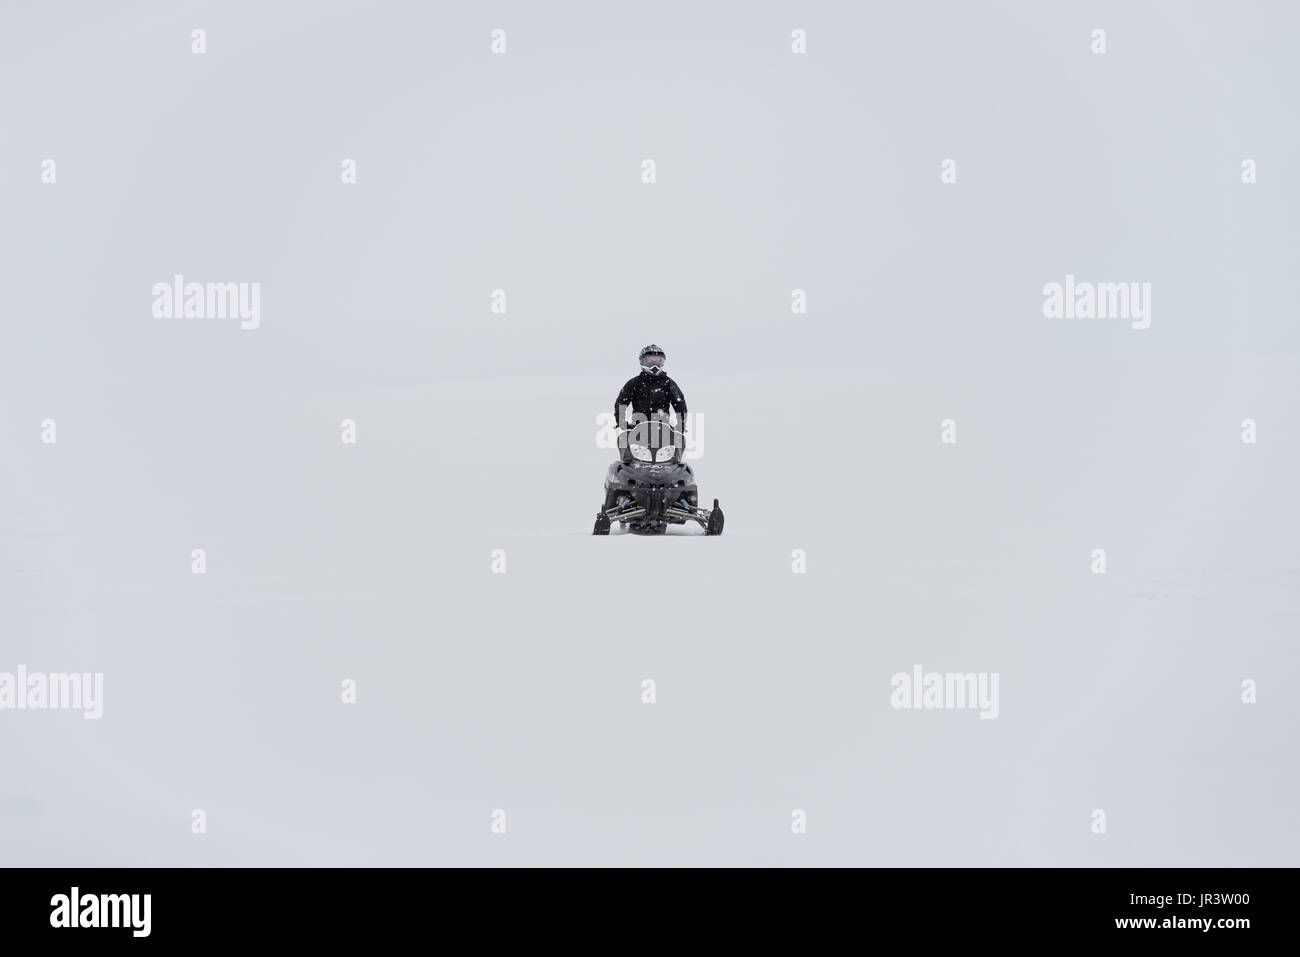 snowmobile scooter whiteout mountain - Stock Image